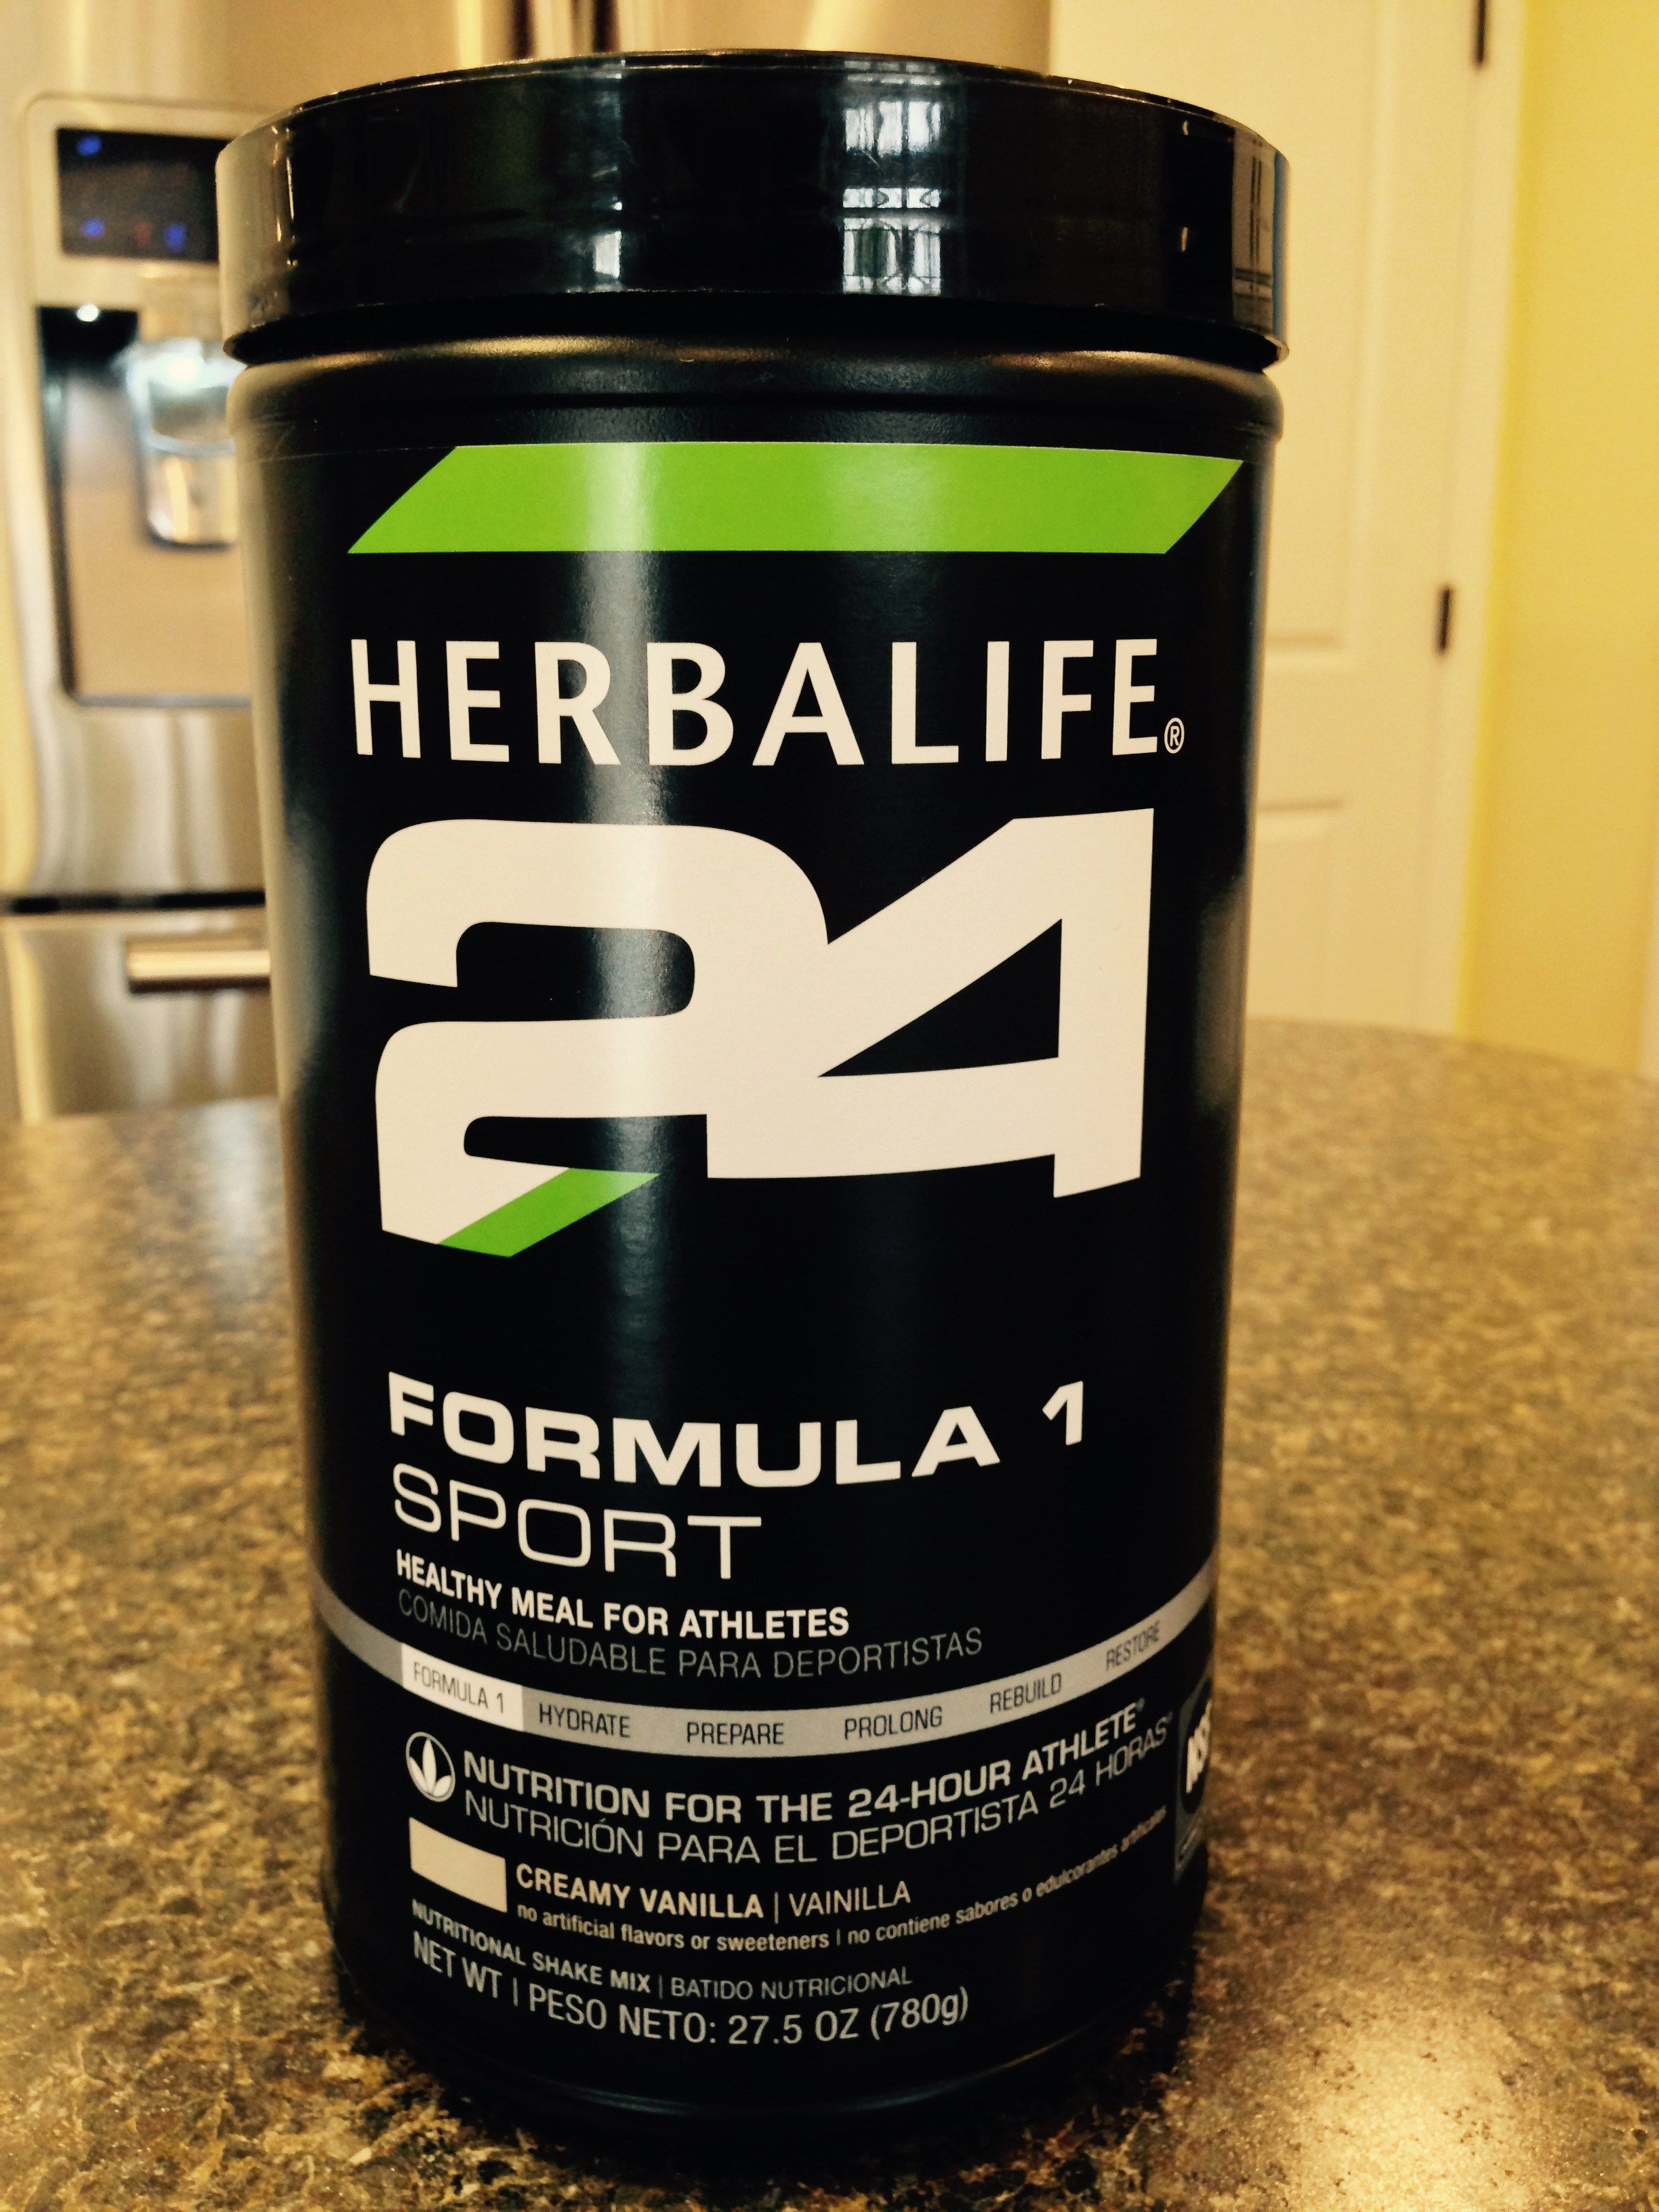 Herbalife24 Formula 1 Sport Drink Mix